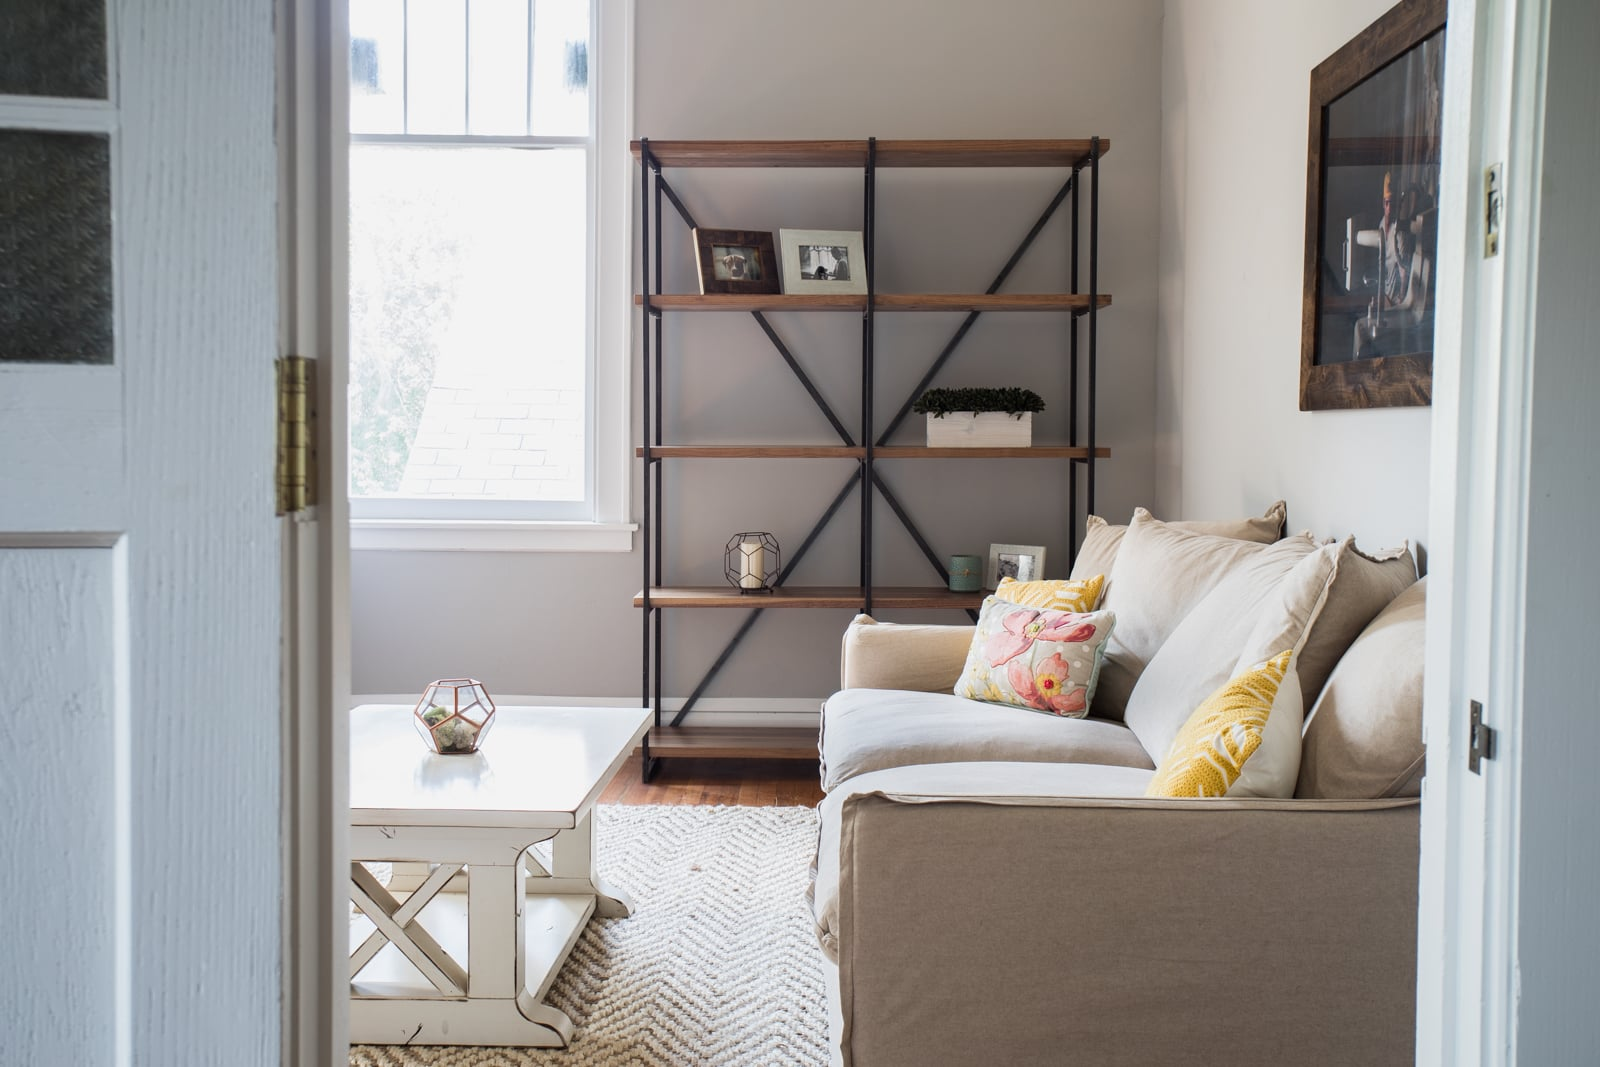 A Metal Bookcase by Unruh complements a living room